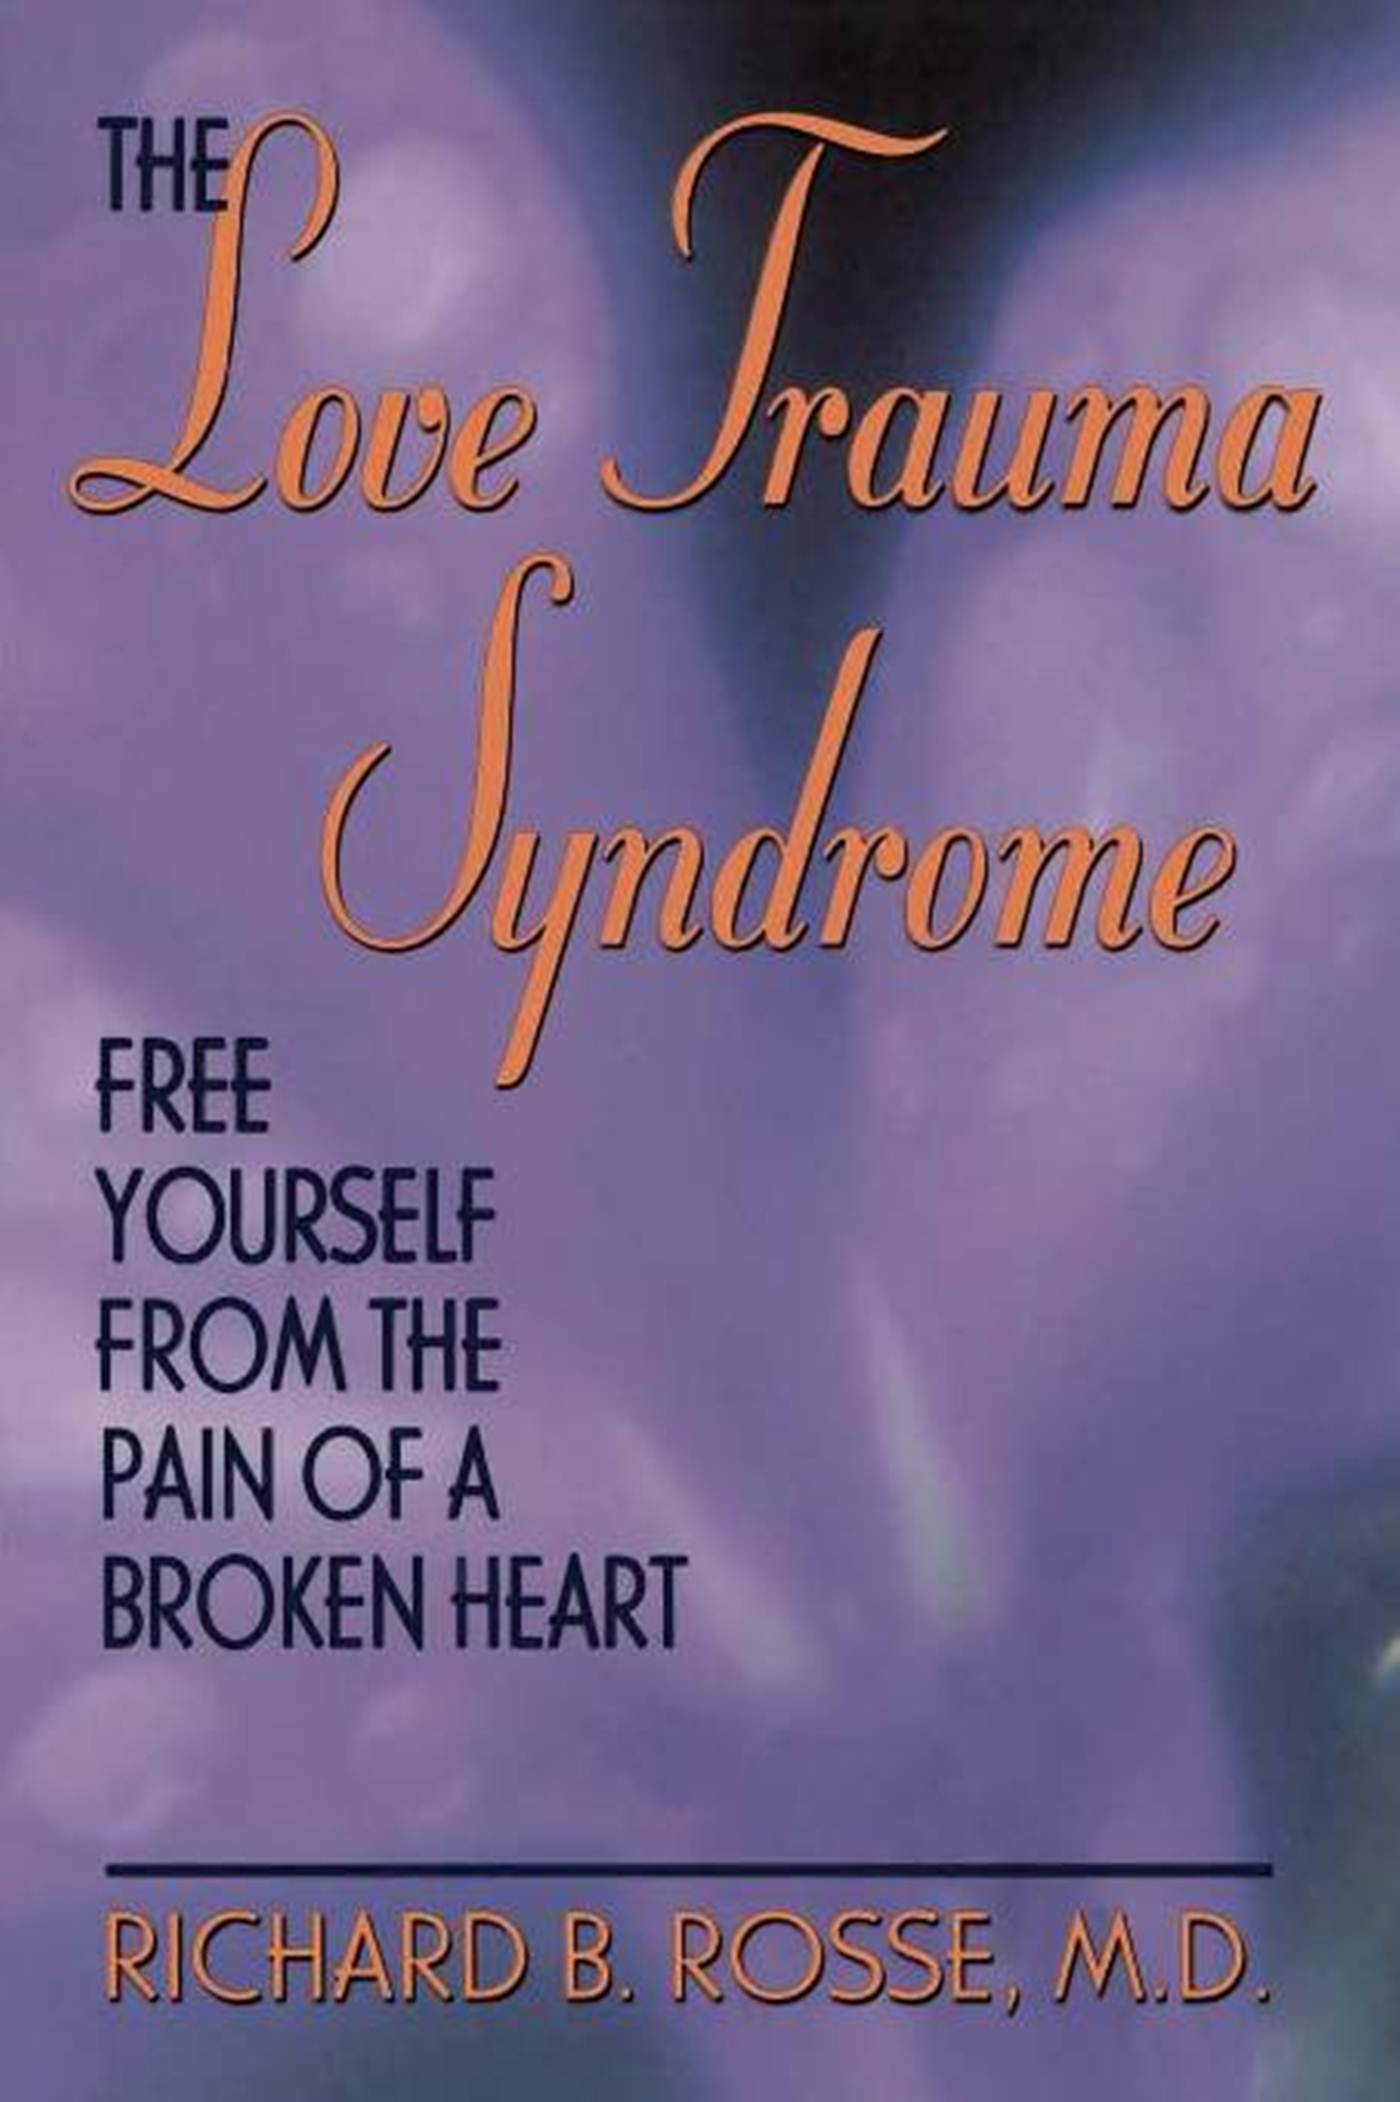 The Love Trauma Syndrome: Free Yourself From The Pain Of A Broken Heart By: Richard B. Rosse